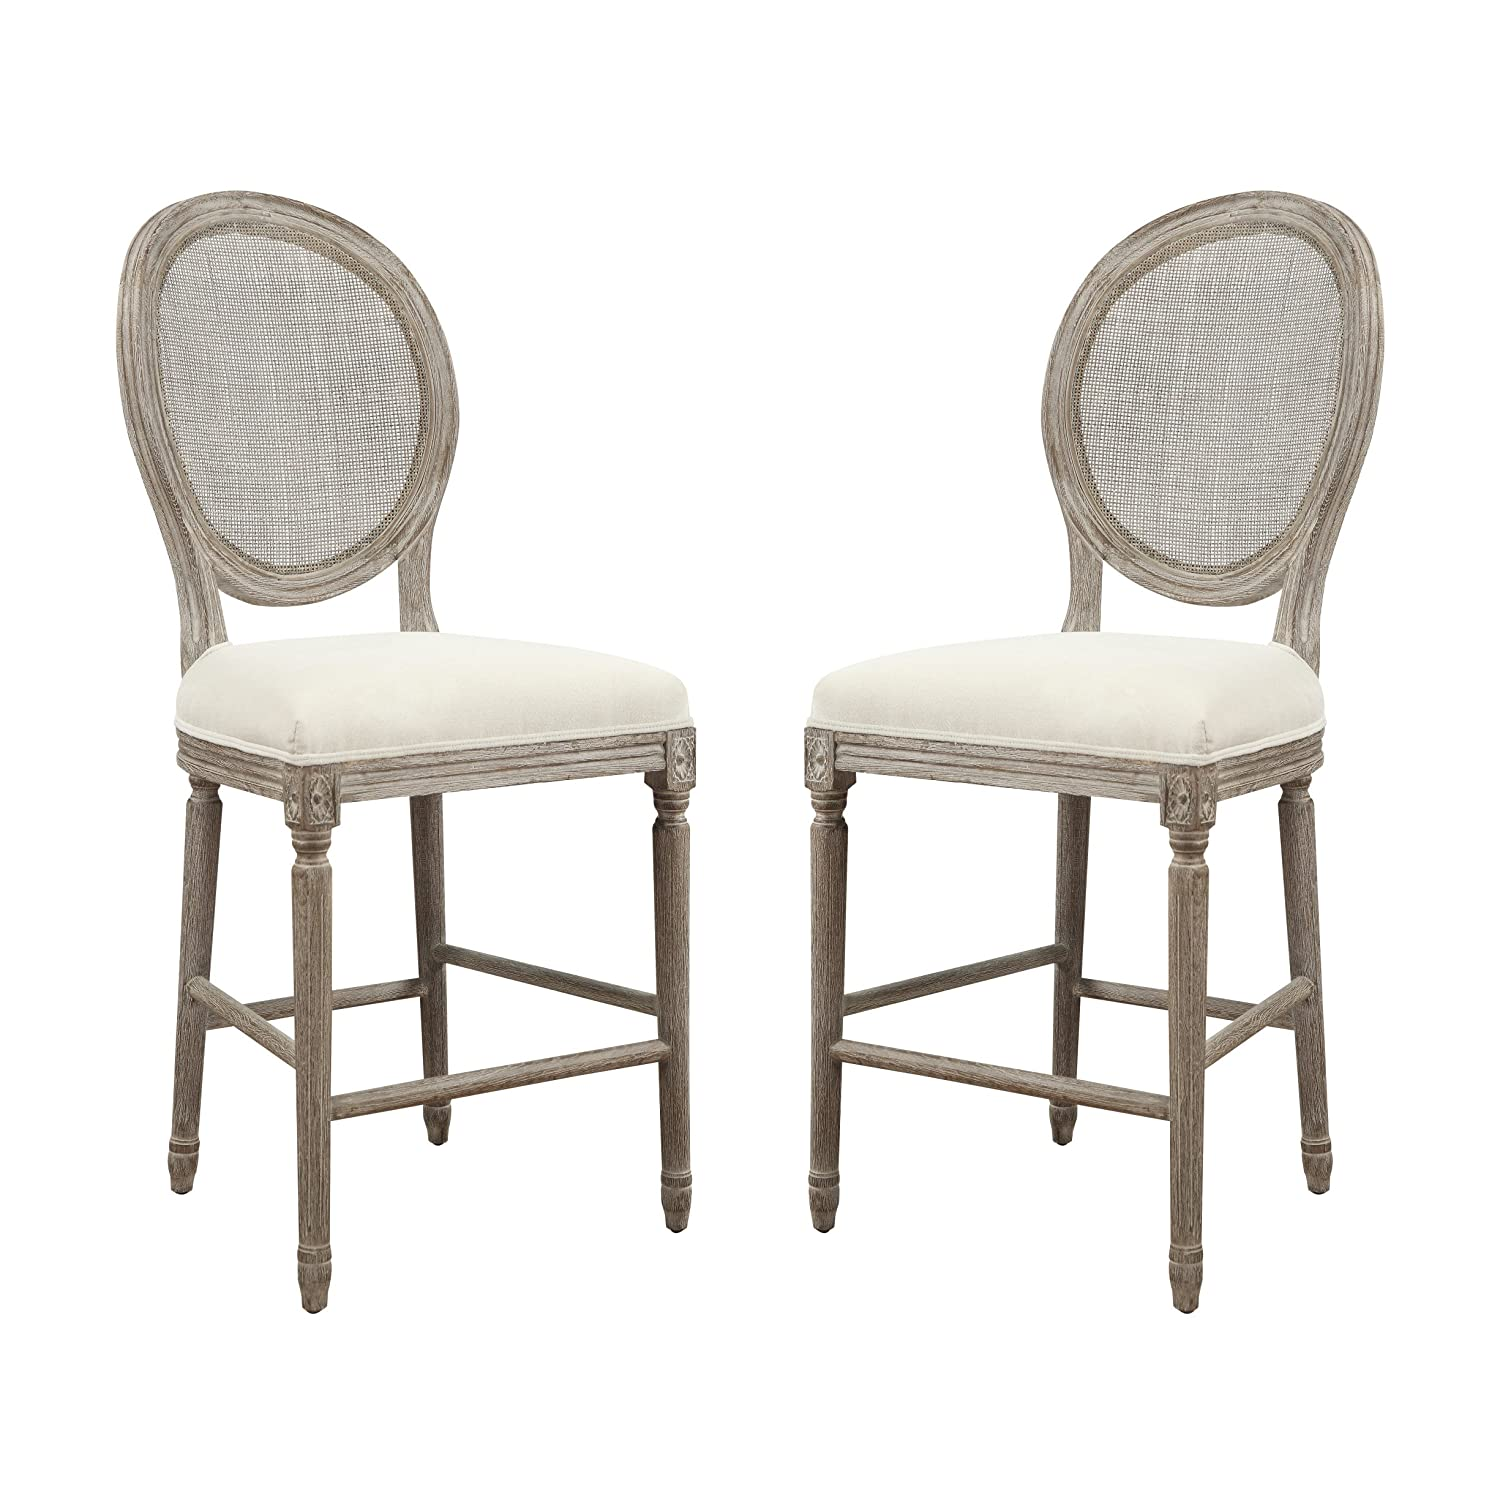 Amazon com emerald home salerno sand gray 24 bar stool with upholstered seat carved legs and rattan back set of two kitchen dining